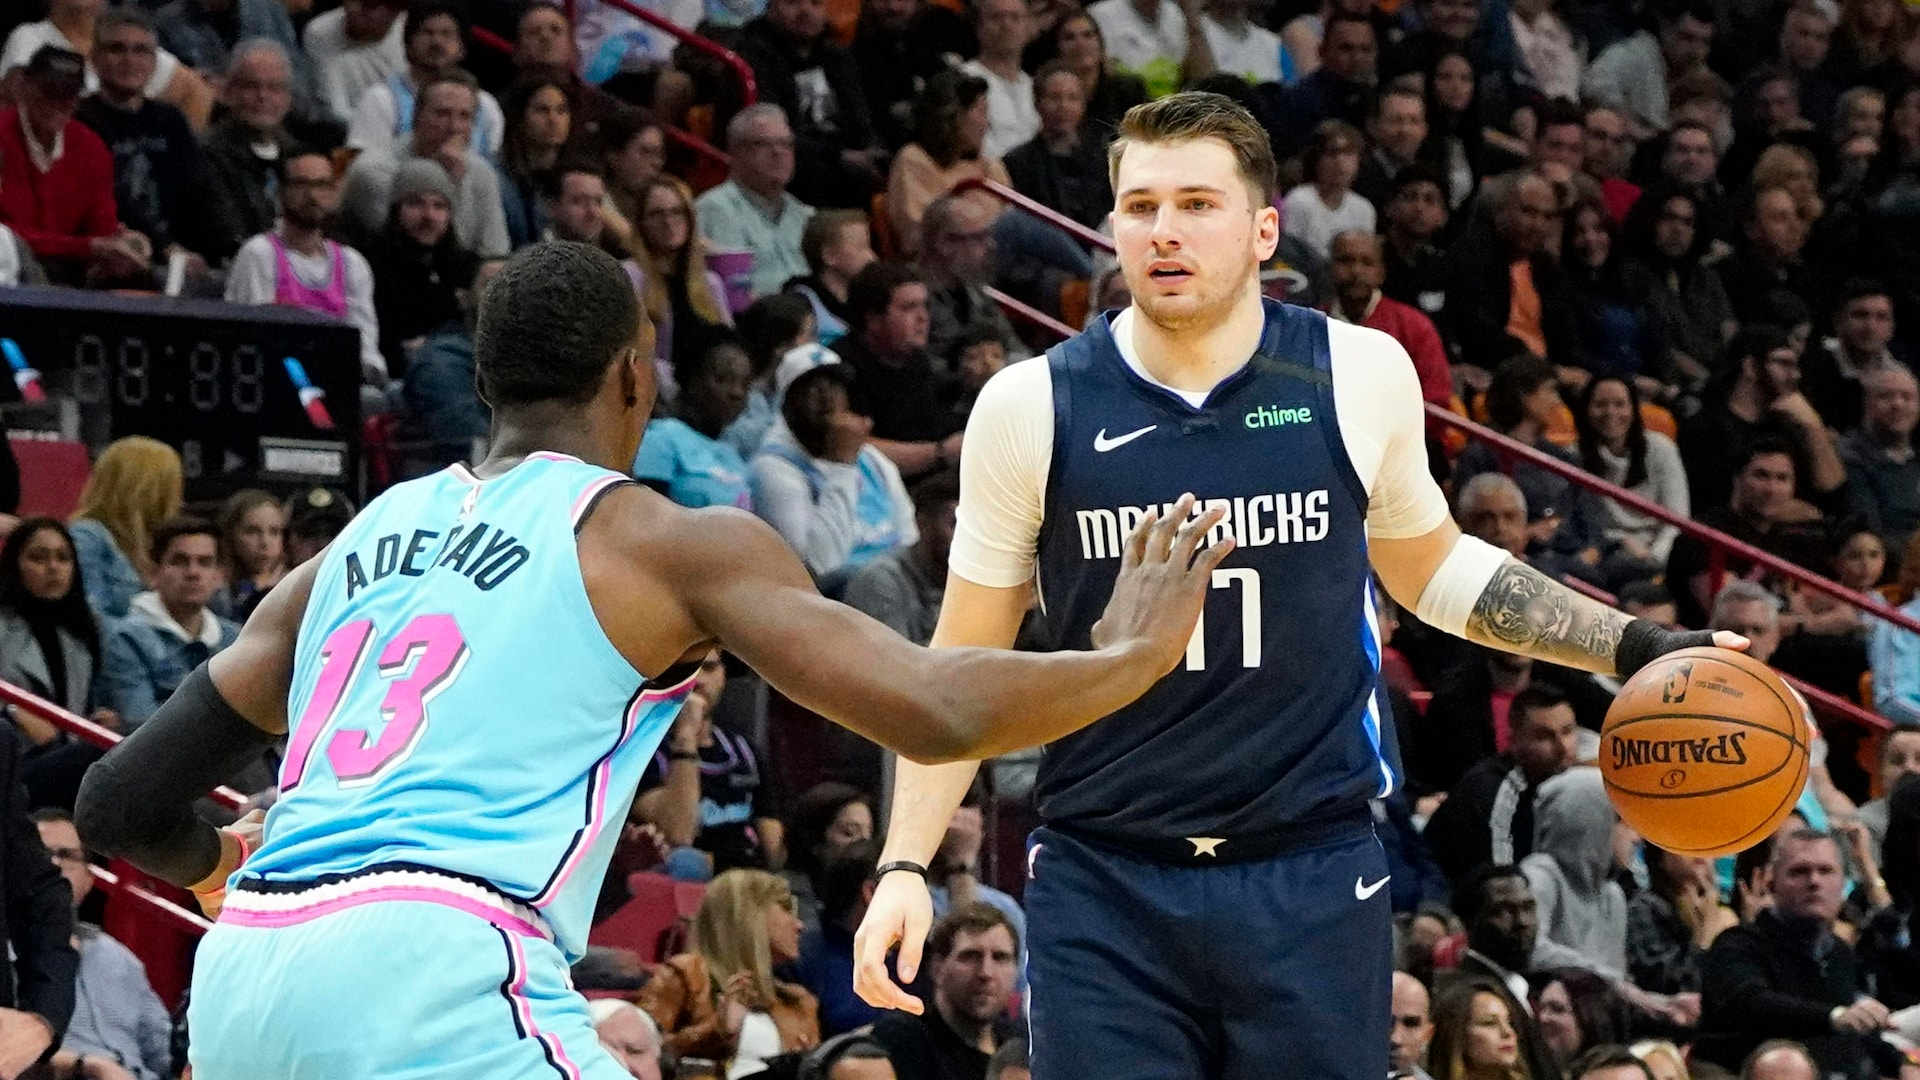 Doncic out Sunday vs. Wolves, could miss Monday vs. Bulls